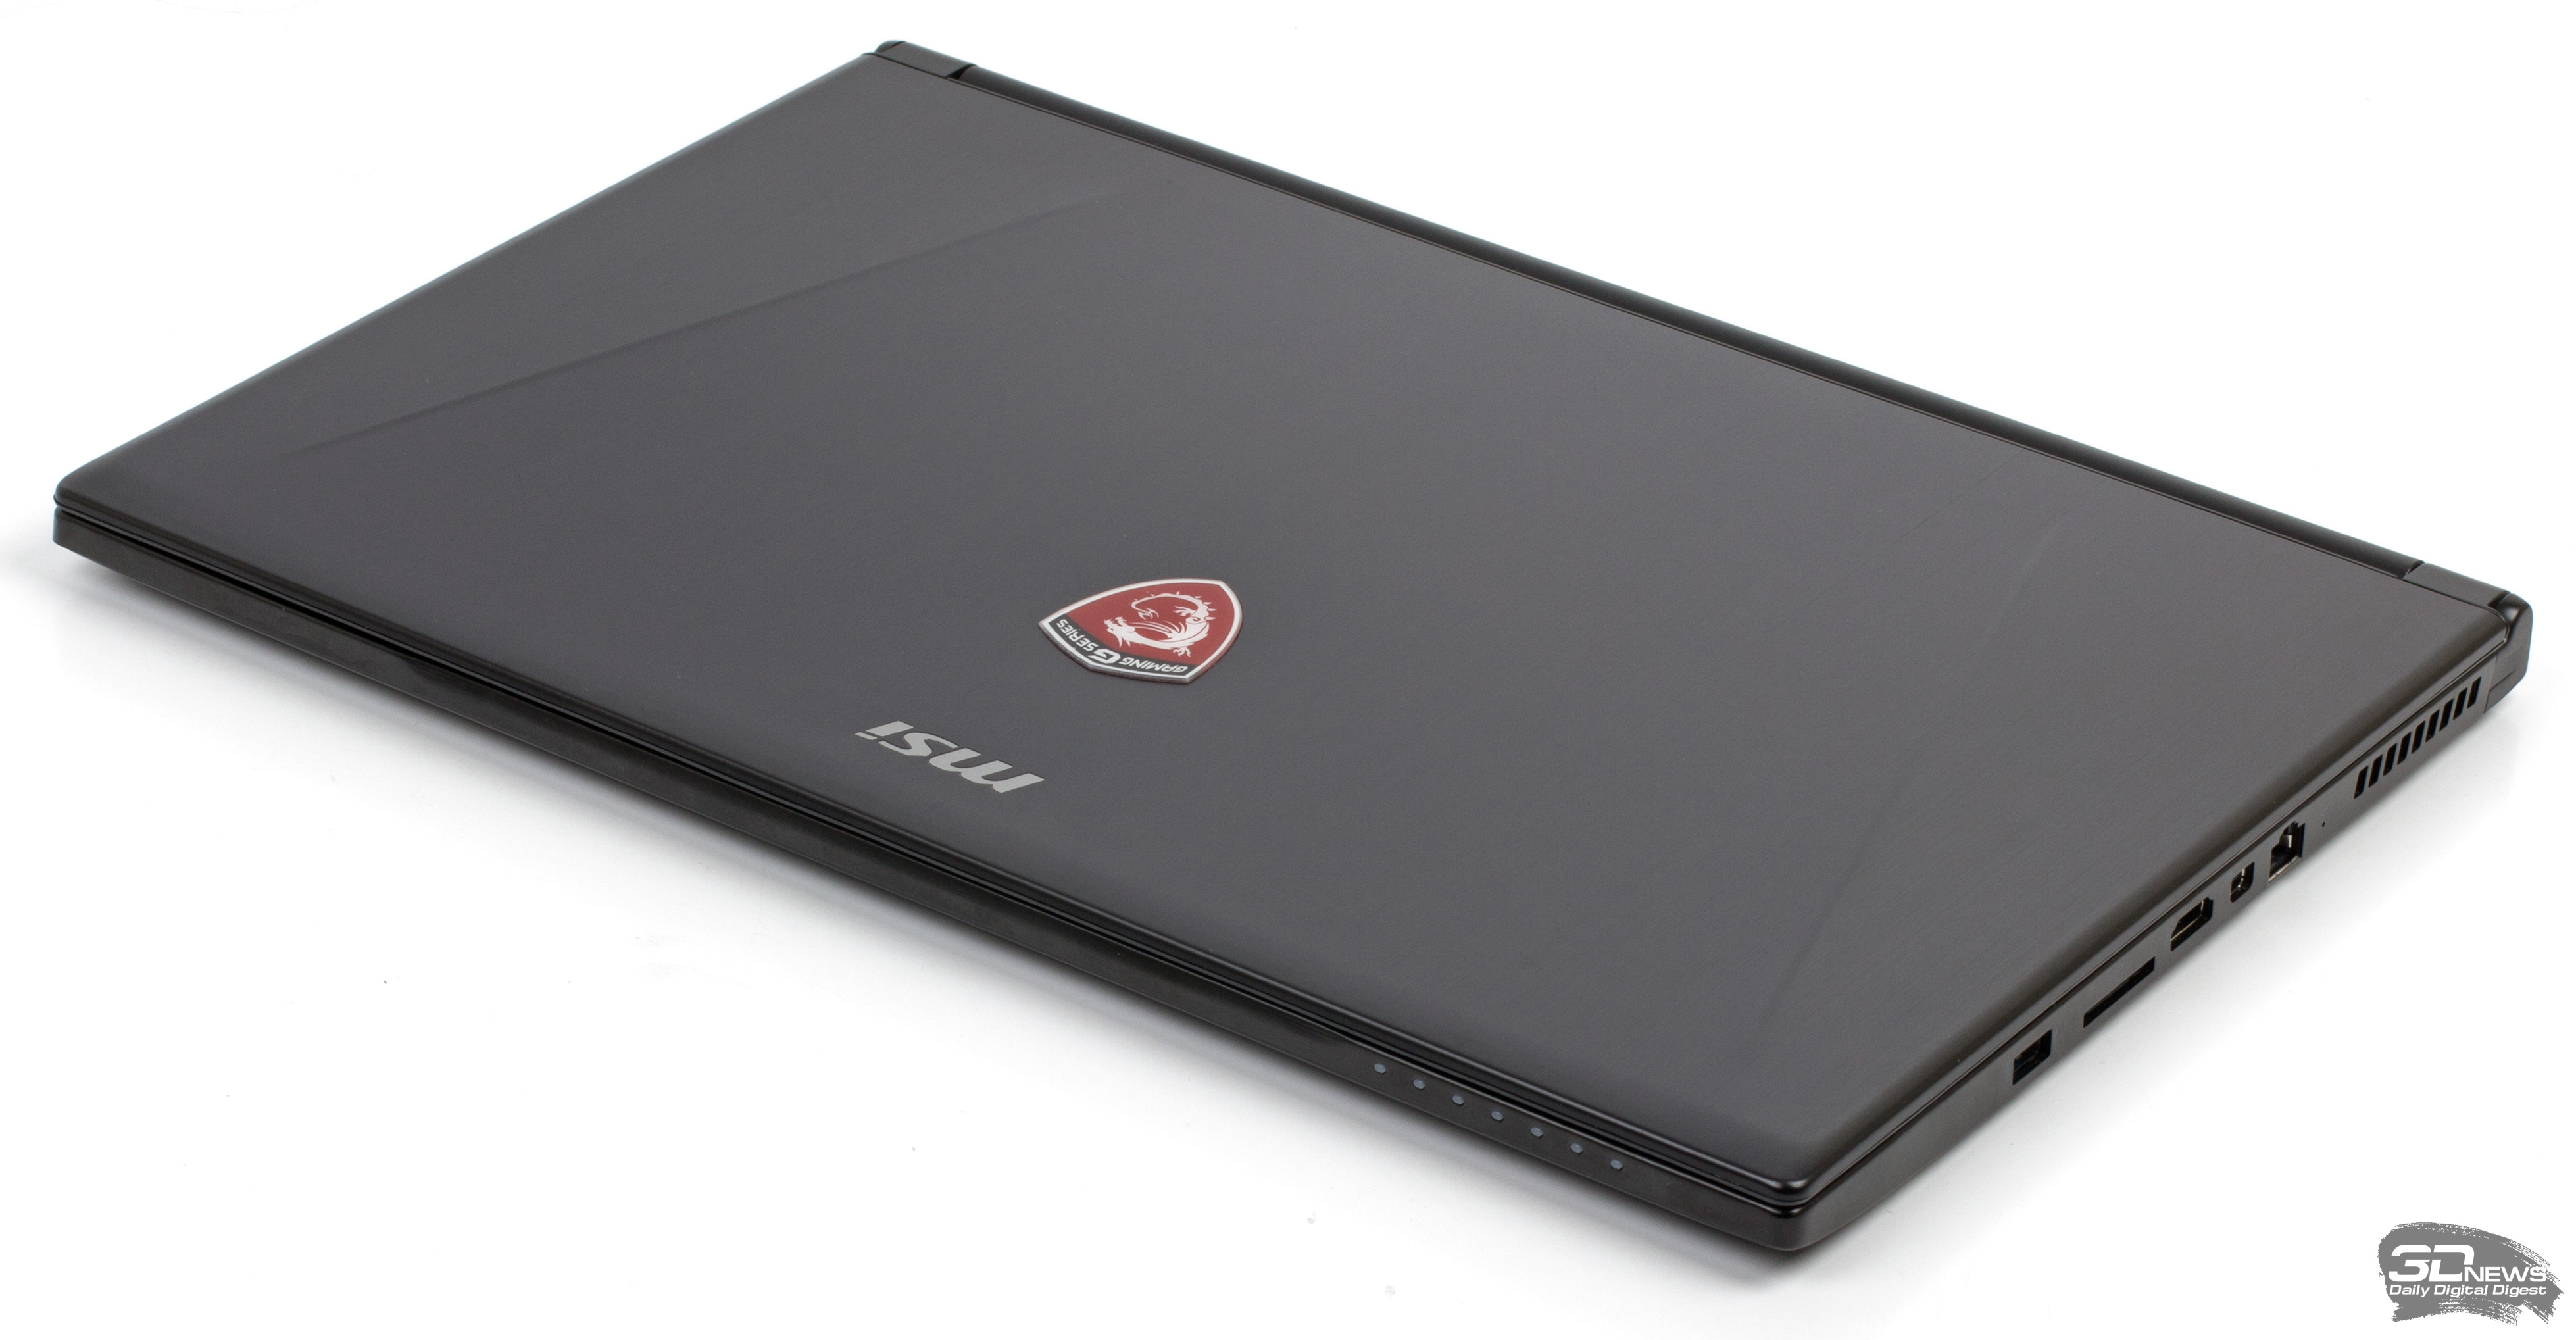 MSI GS60 2PL GHOST REALTEK BLUETOOTH WINDOWS 7 X64 DRIVER DOWNLOAD